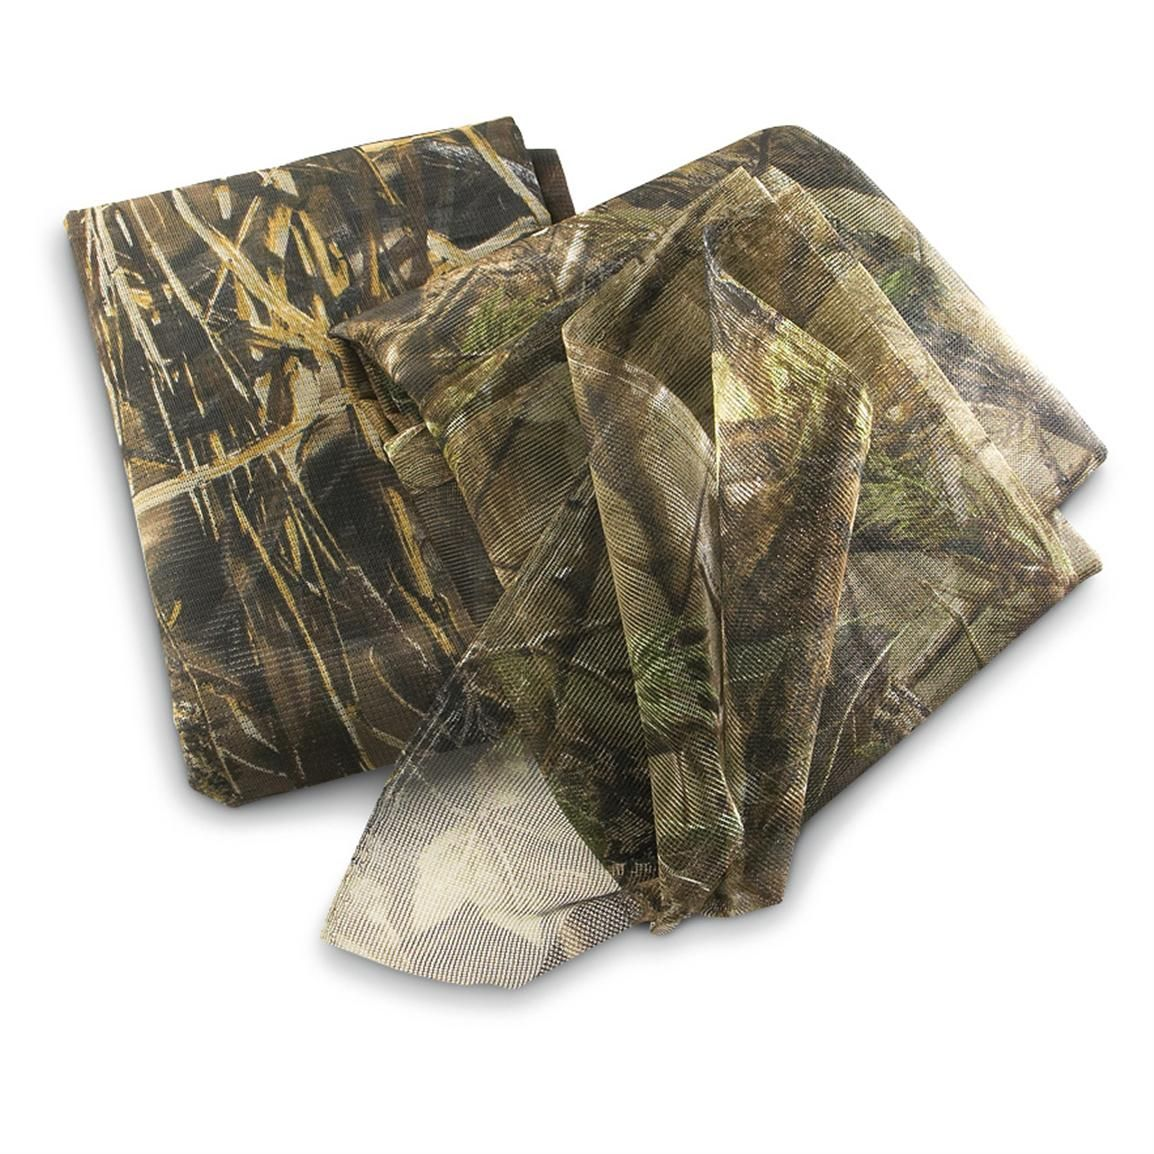 Camo Outdoor Wedding Ideas: Camo Mesh Netting Is An Easy To Use Essential For Camo